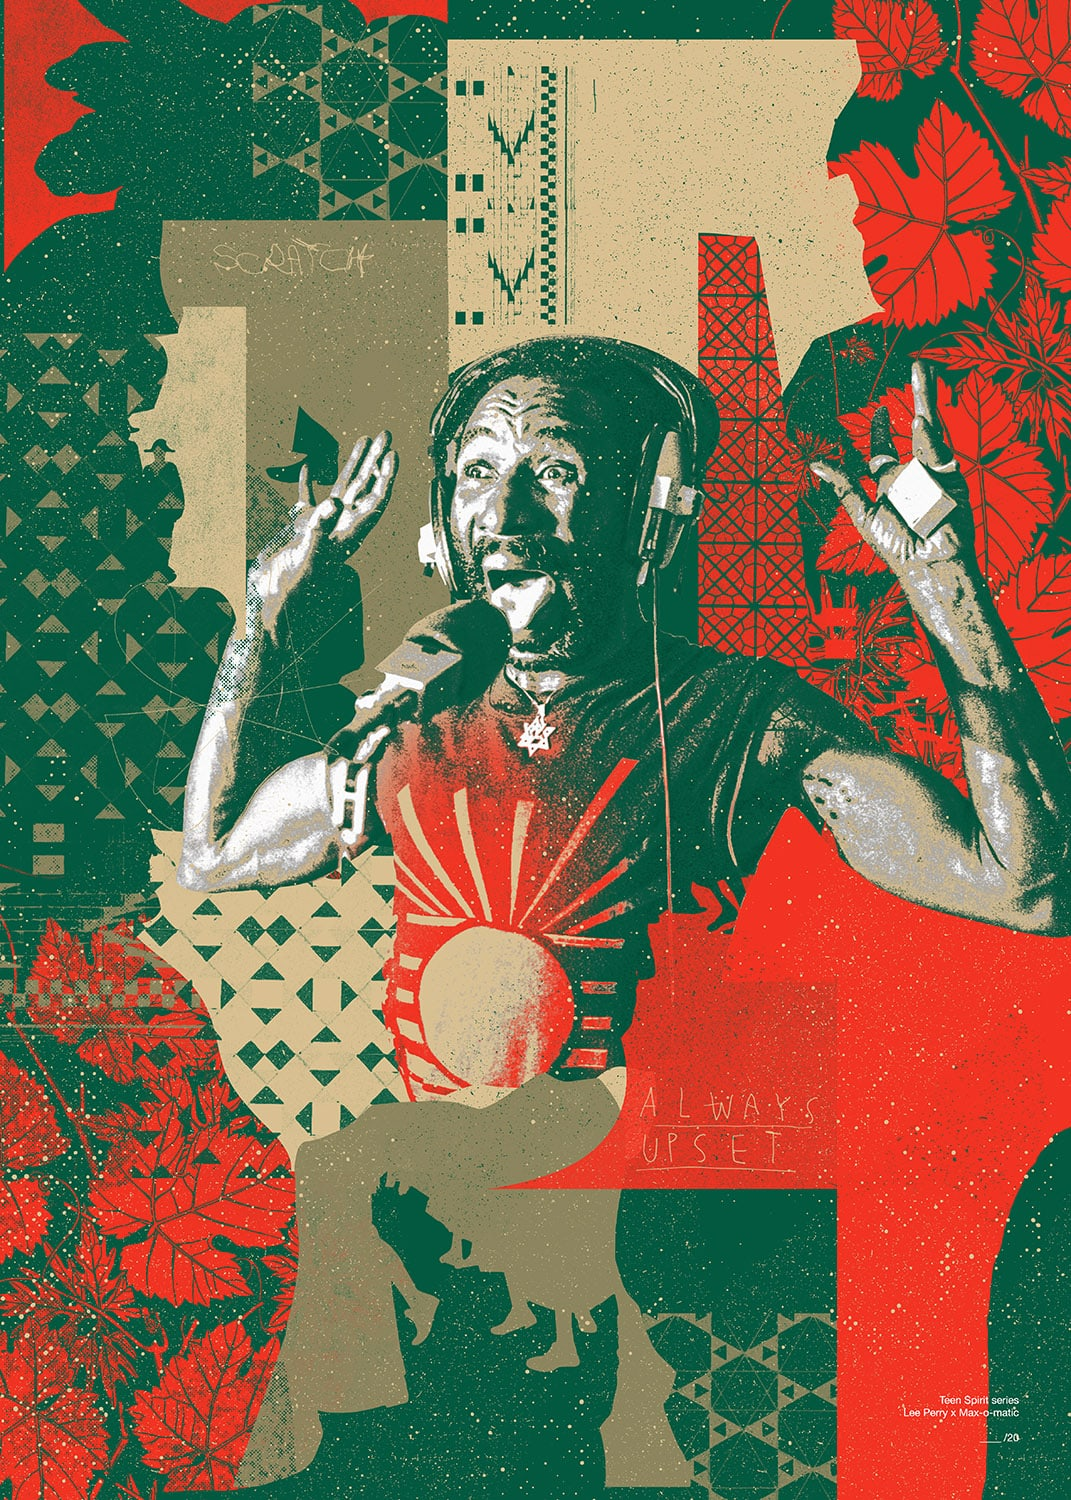 Max-o-matic: Icons: Lee Perry